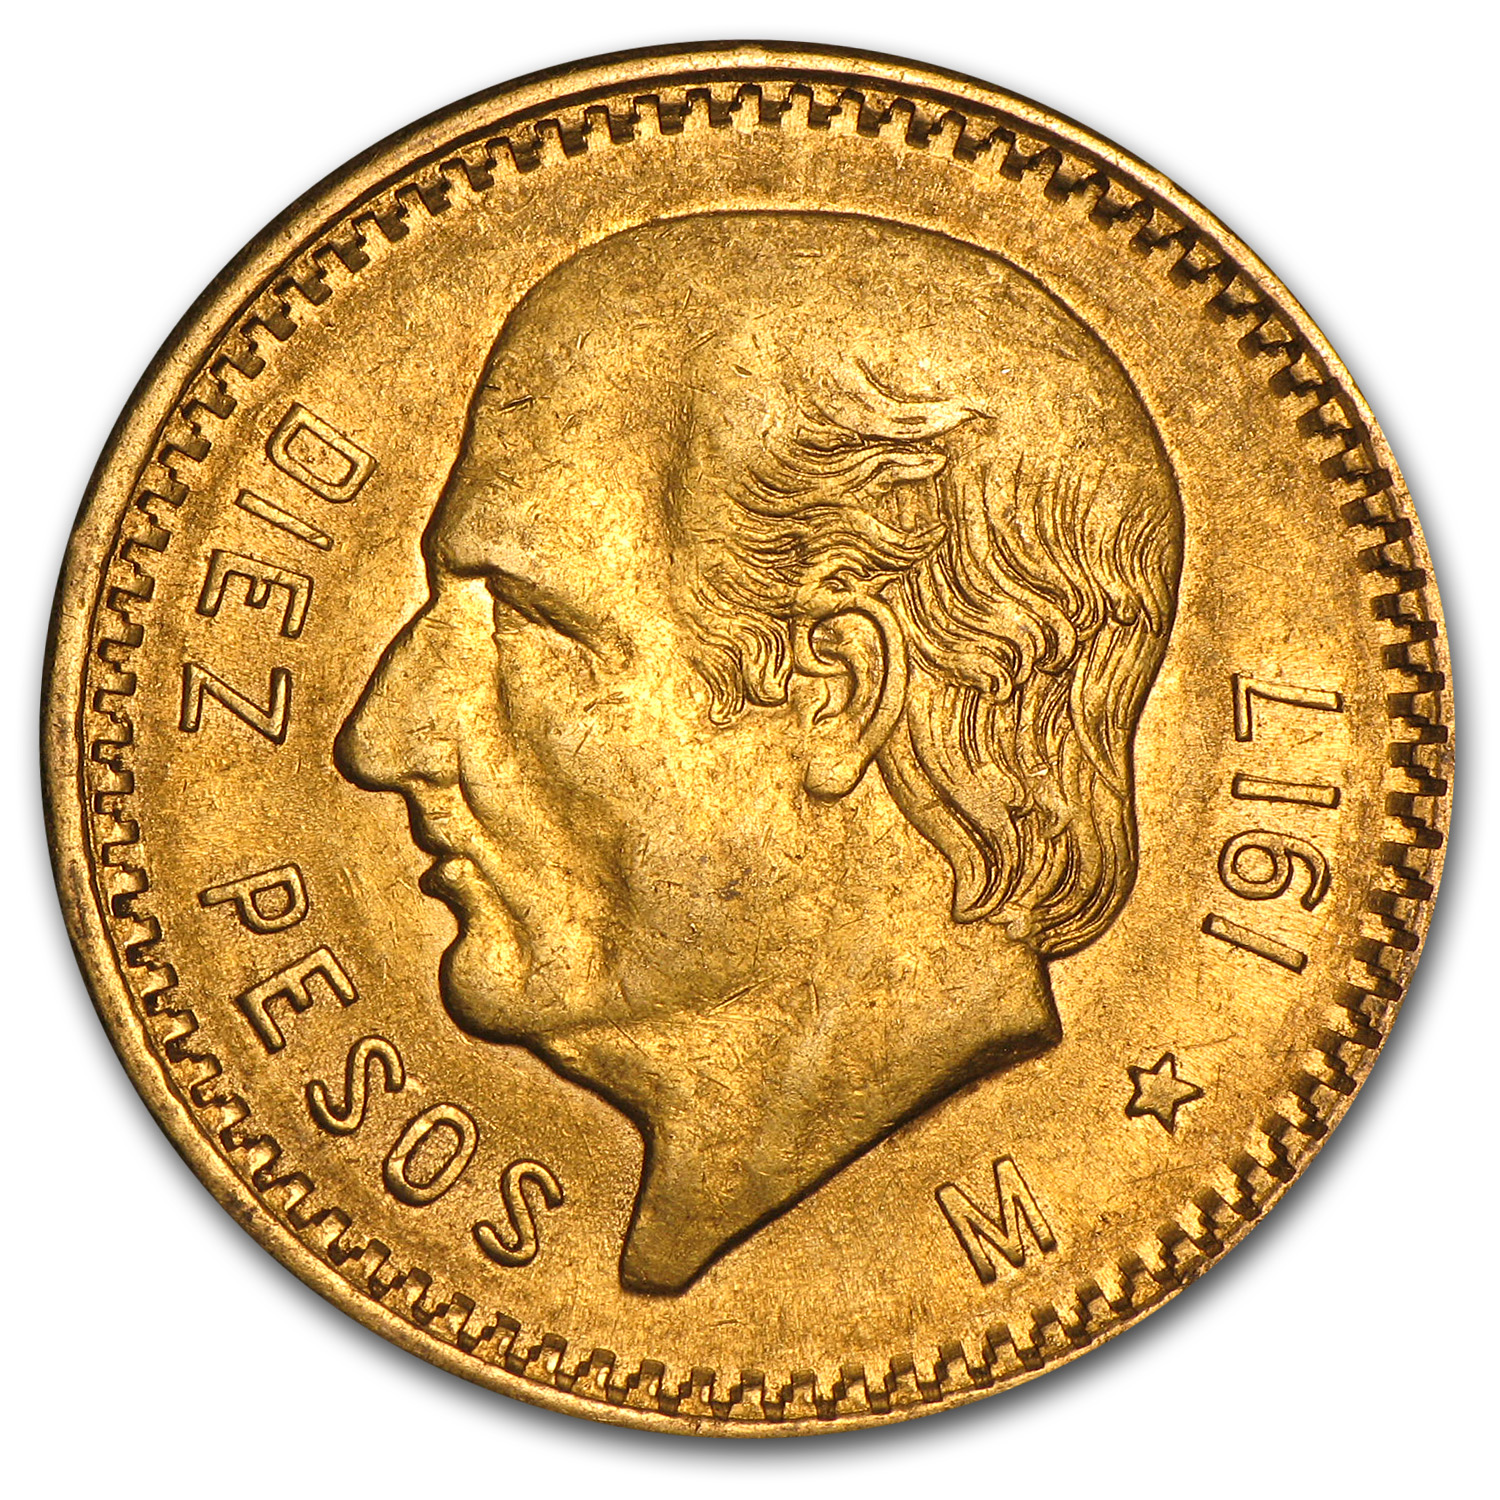 1917 Mexican Gold 10 Pesos (Almost Uncirculated)